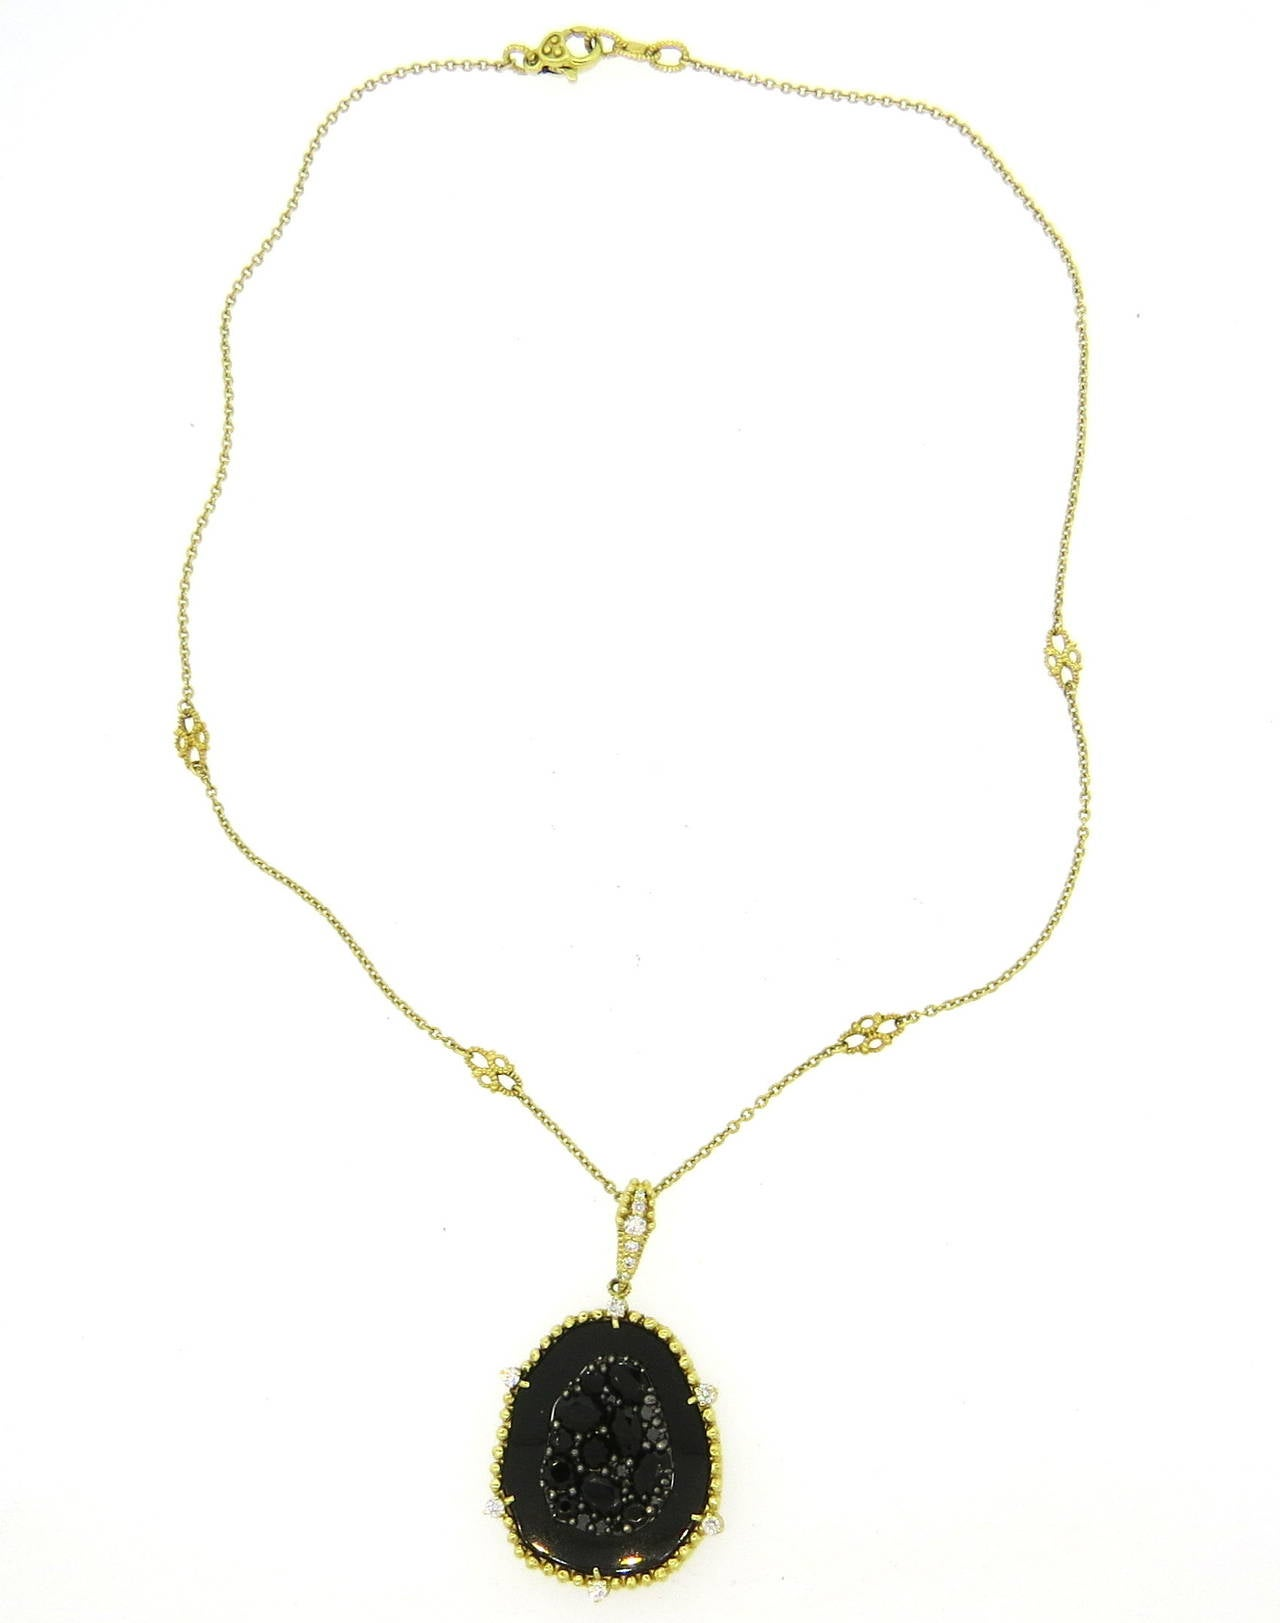 Judith ripka oasis gold onyx diamond pendant necklace at 1stdibs an 18k yellow gold necklace featuring a pendant set with approximately 022ctw of g judith ripka aloadofball Images